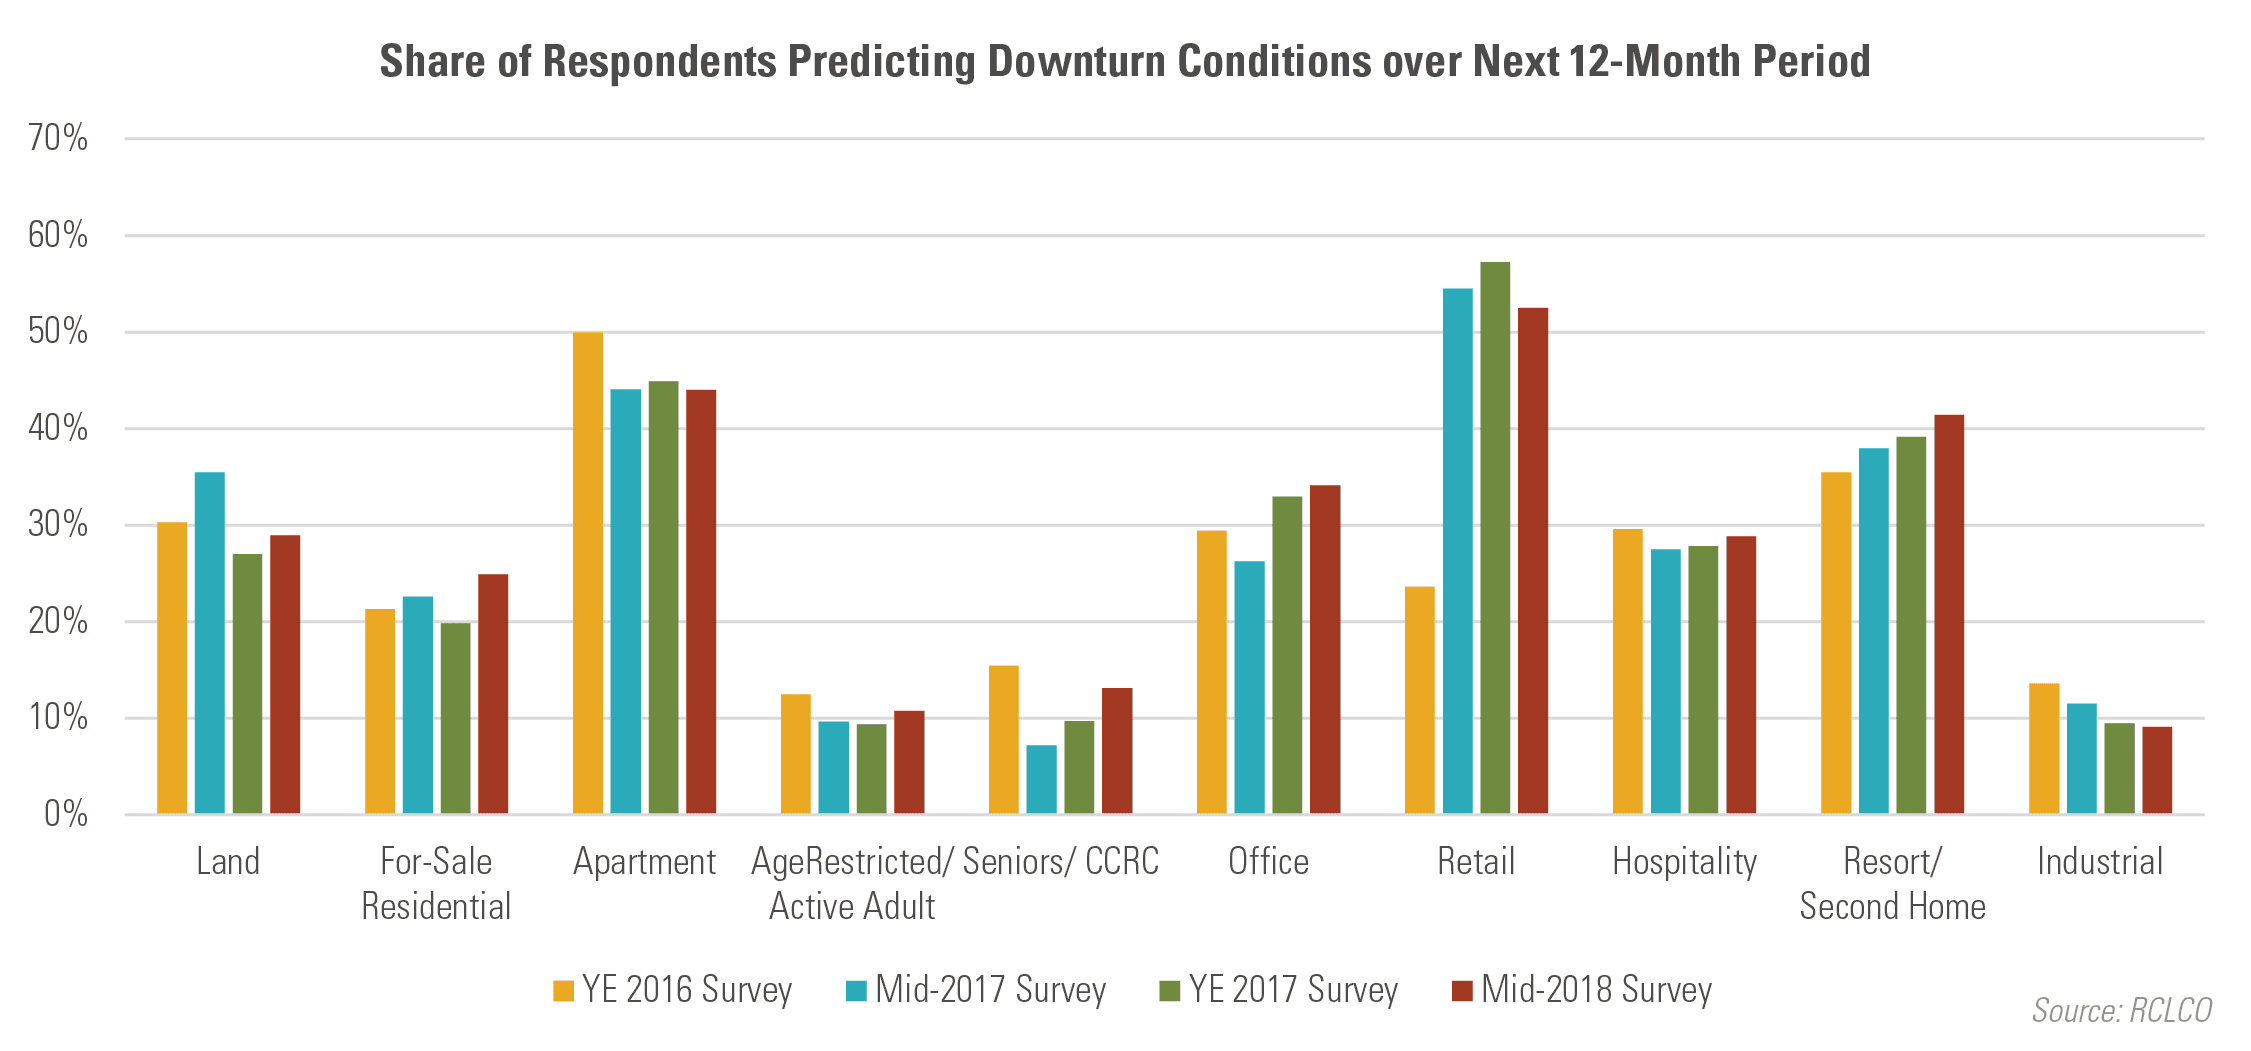 Share of Respondents Predicting Downturn Condtions over Next 12-Month Period